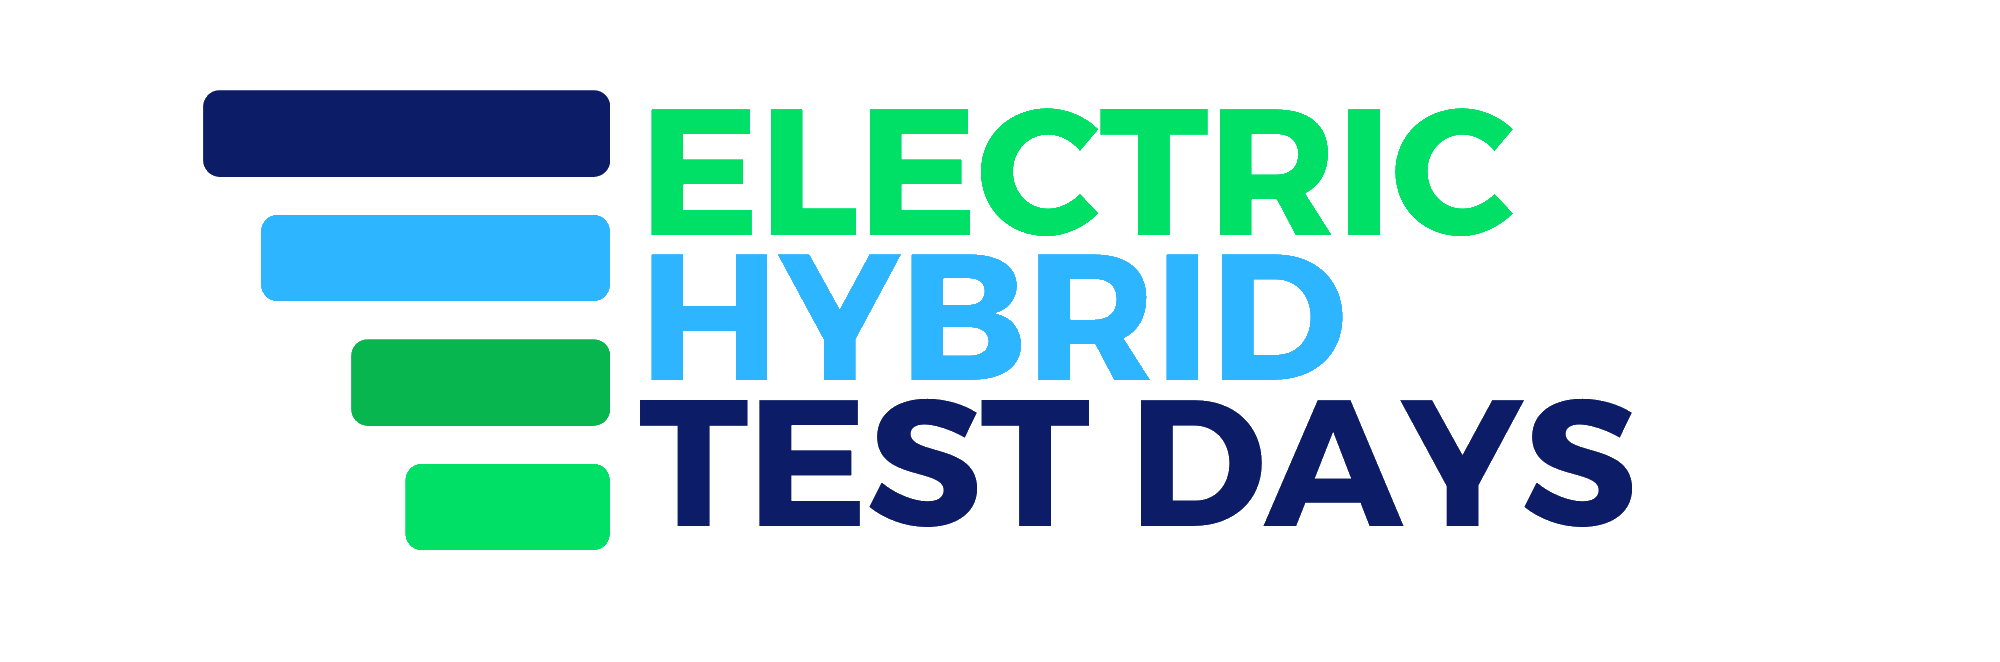 Electric hybrid test days png